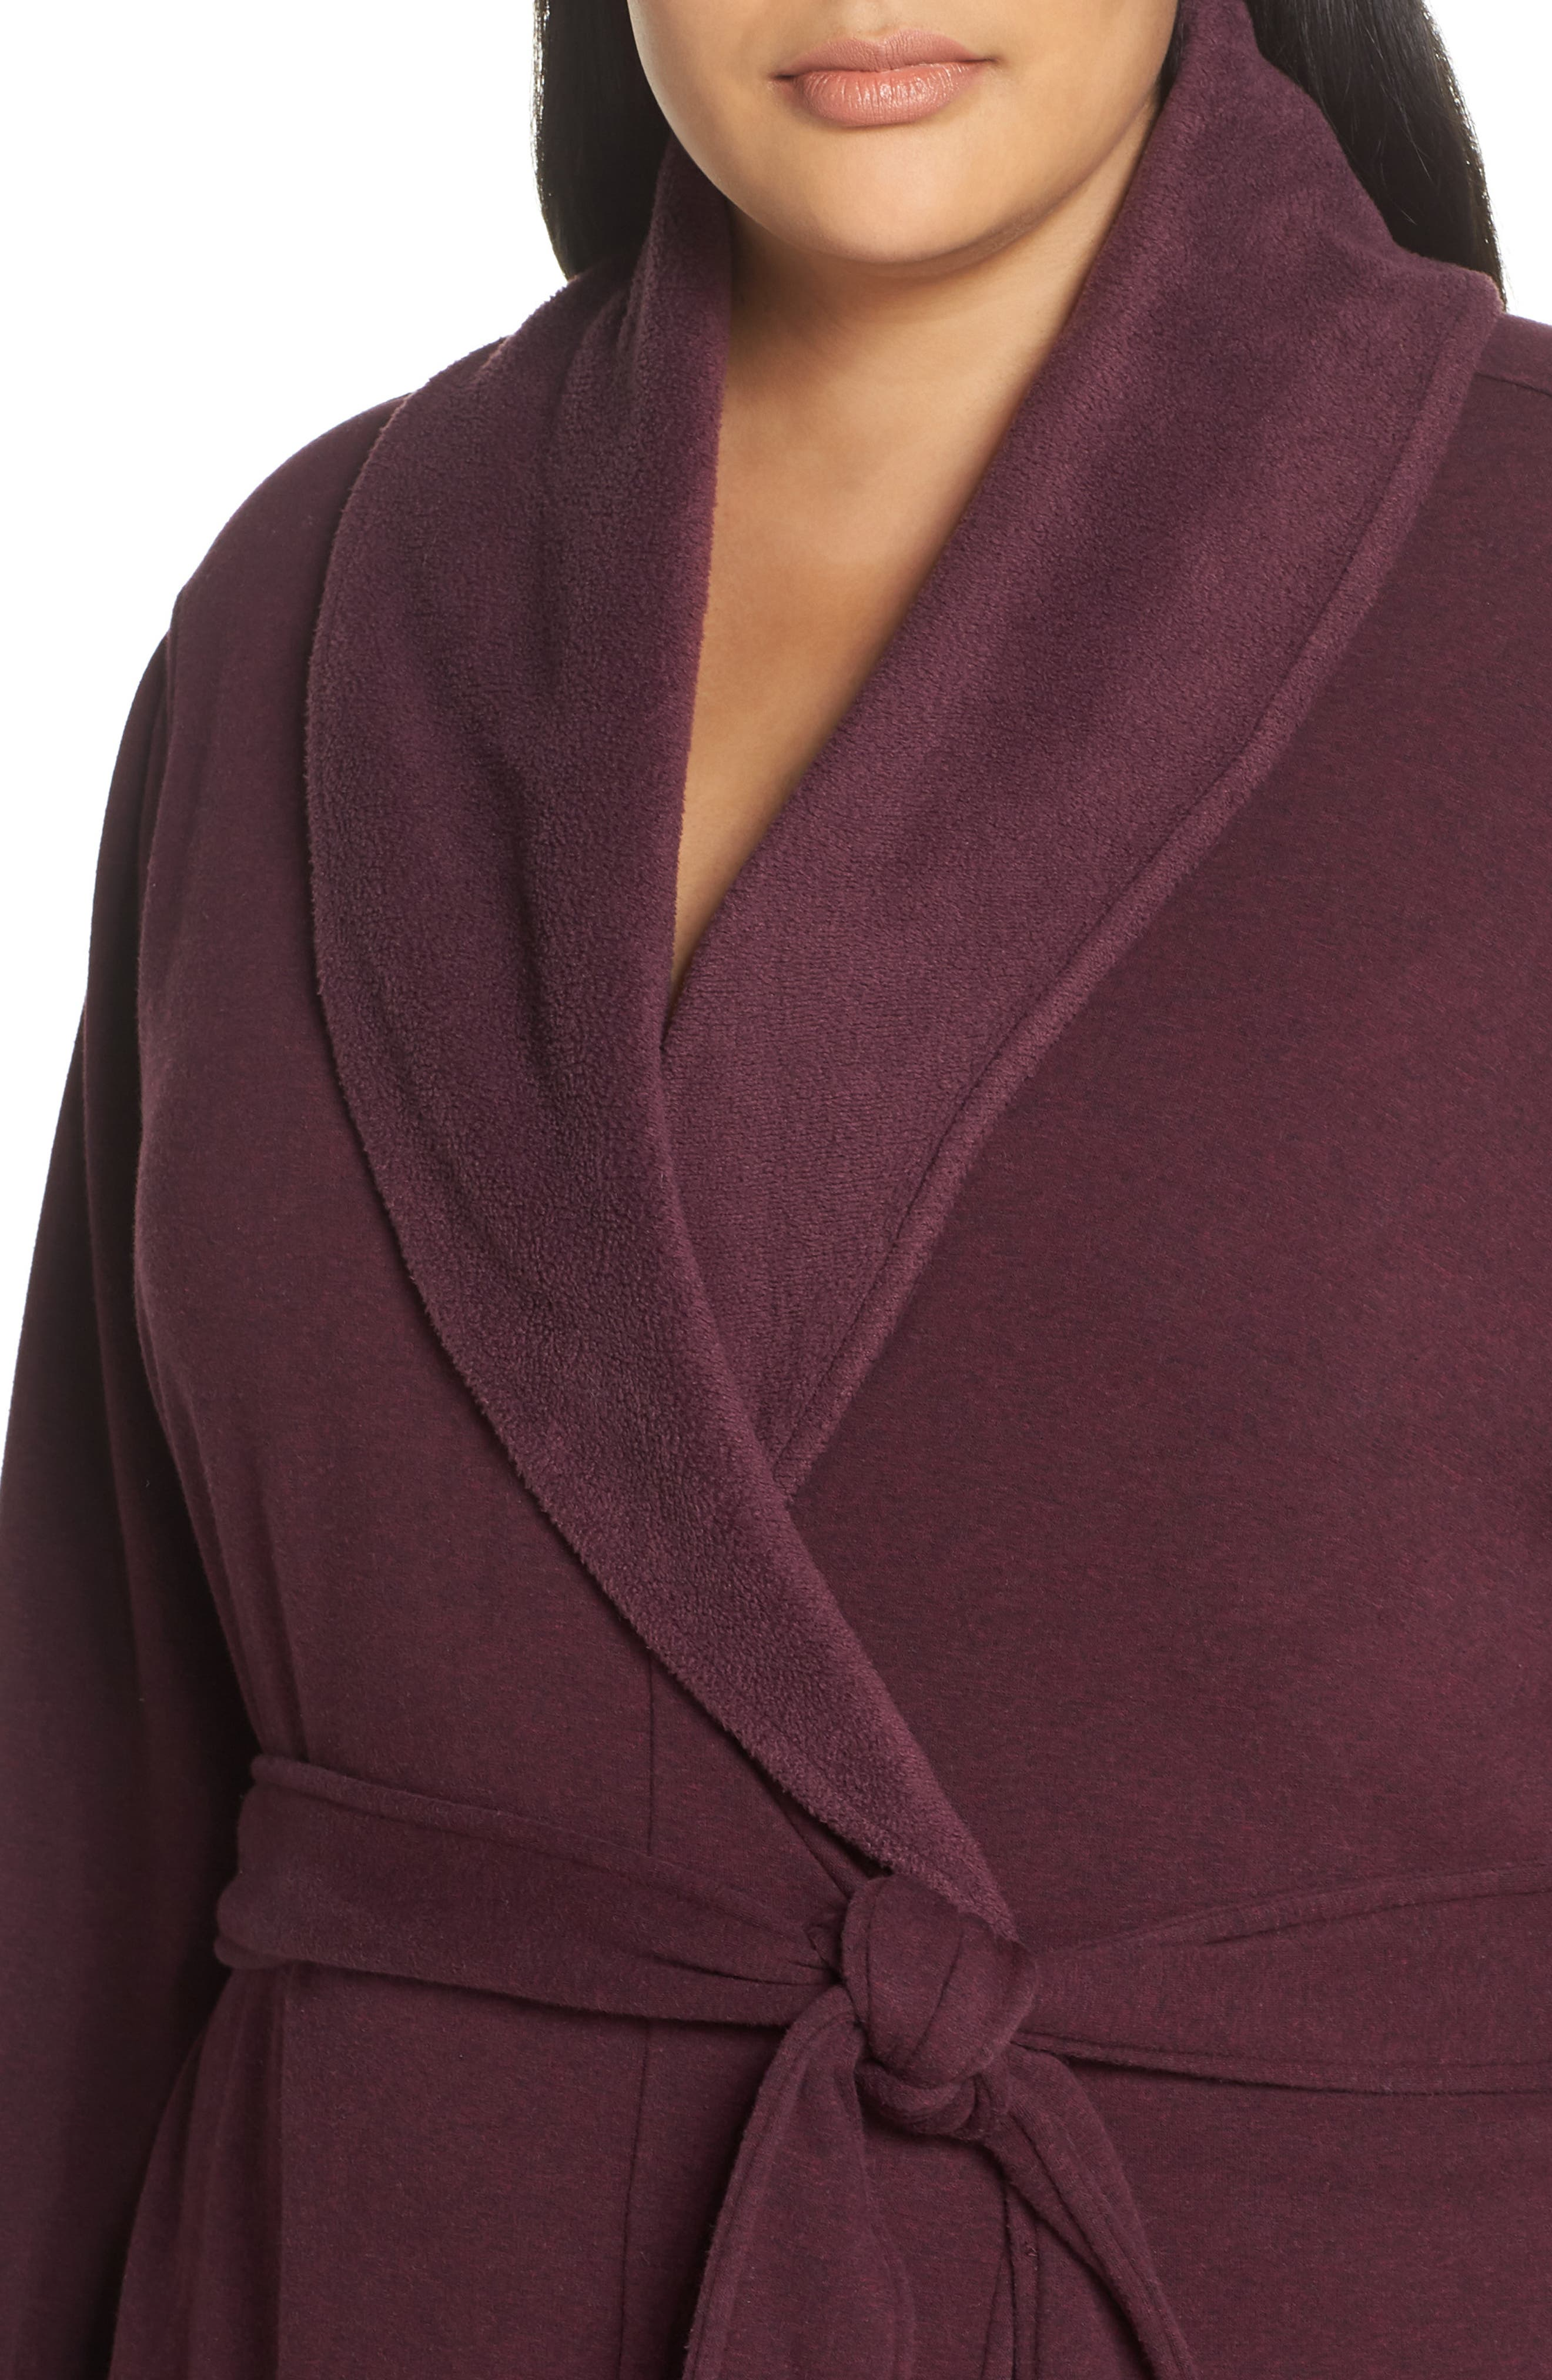 Duffield II Robe,                             Alternate thumbnail 4, color,                             PORT HEATHER